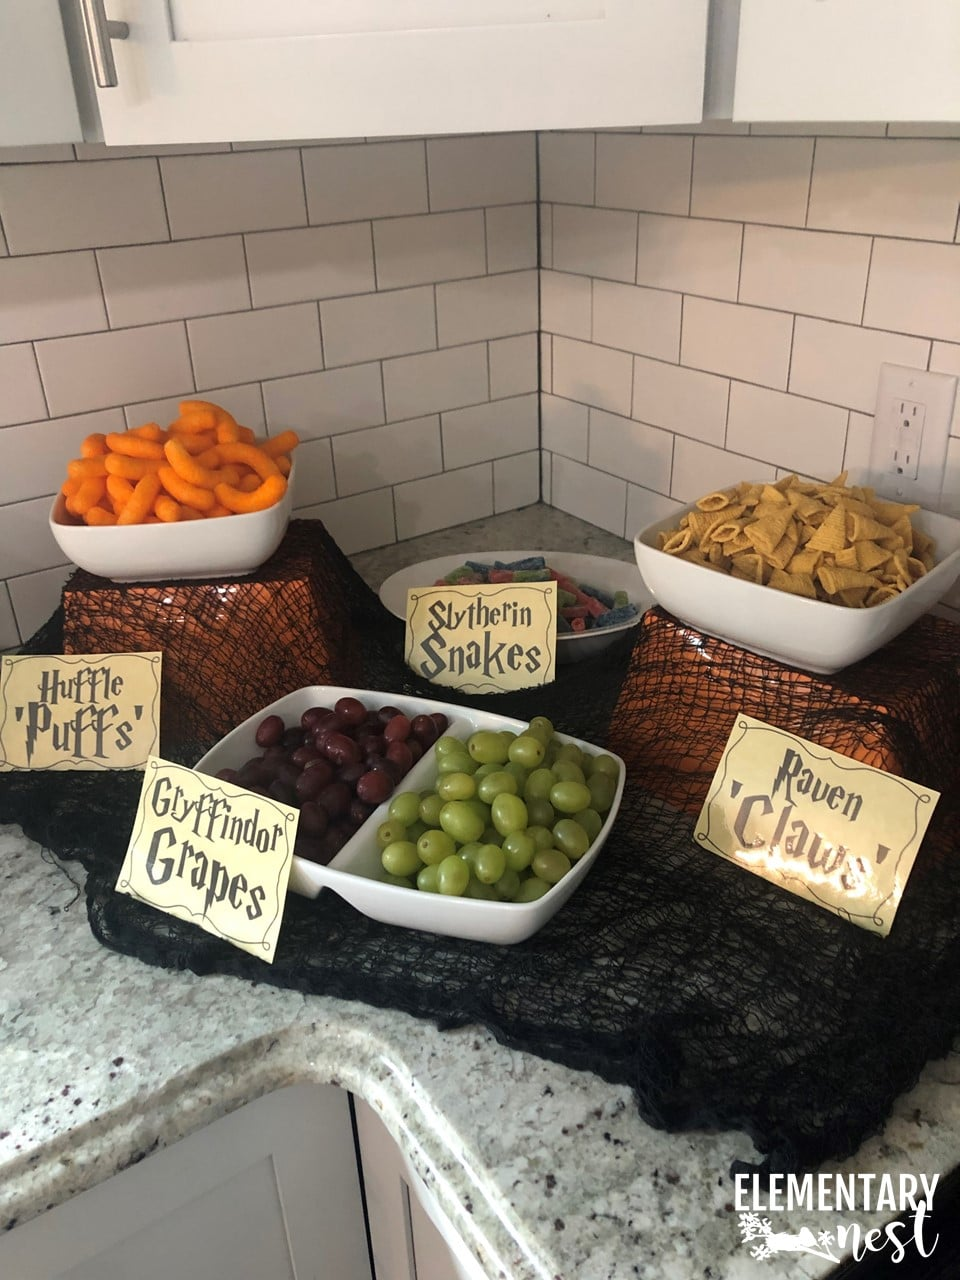 Harry Potter themed party ideas for Harry Potter food, Harry Potter snacks, and Harry Potter party decor.